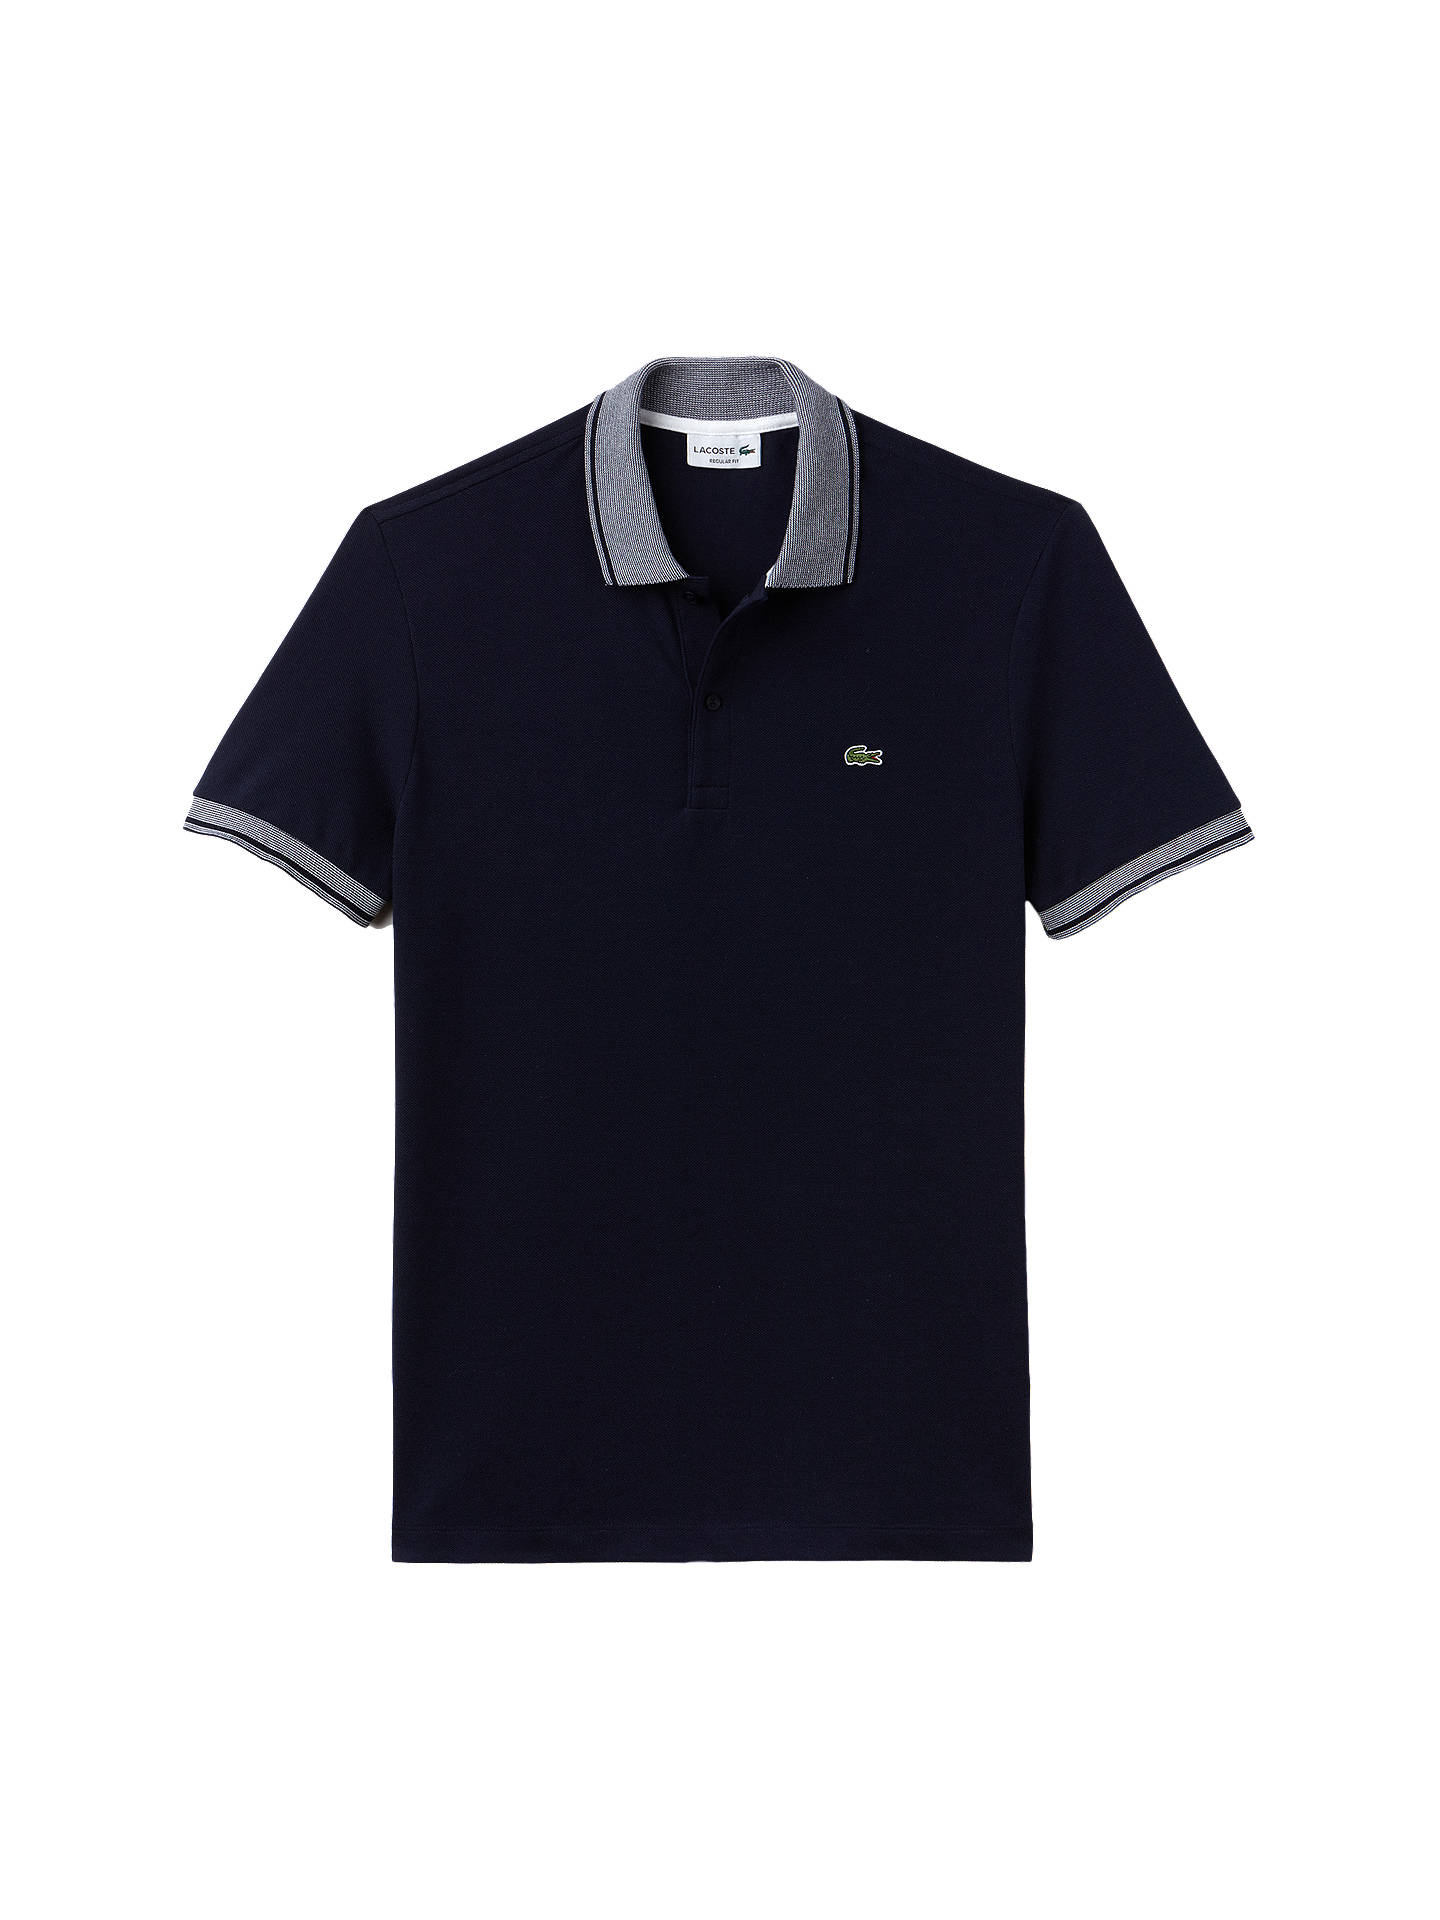 BuyLacoste Regular Fit Woven Collar Short Sleeve Polo Shirt, Navy/White, SS Online at johnlewis.com